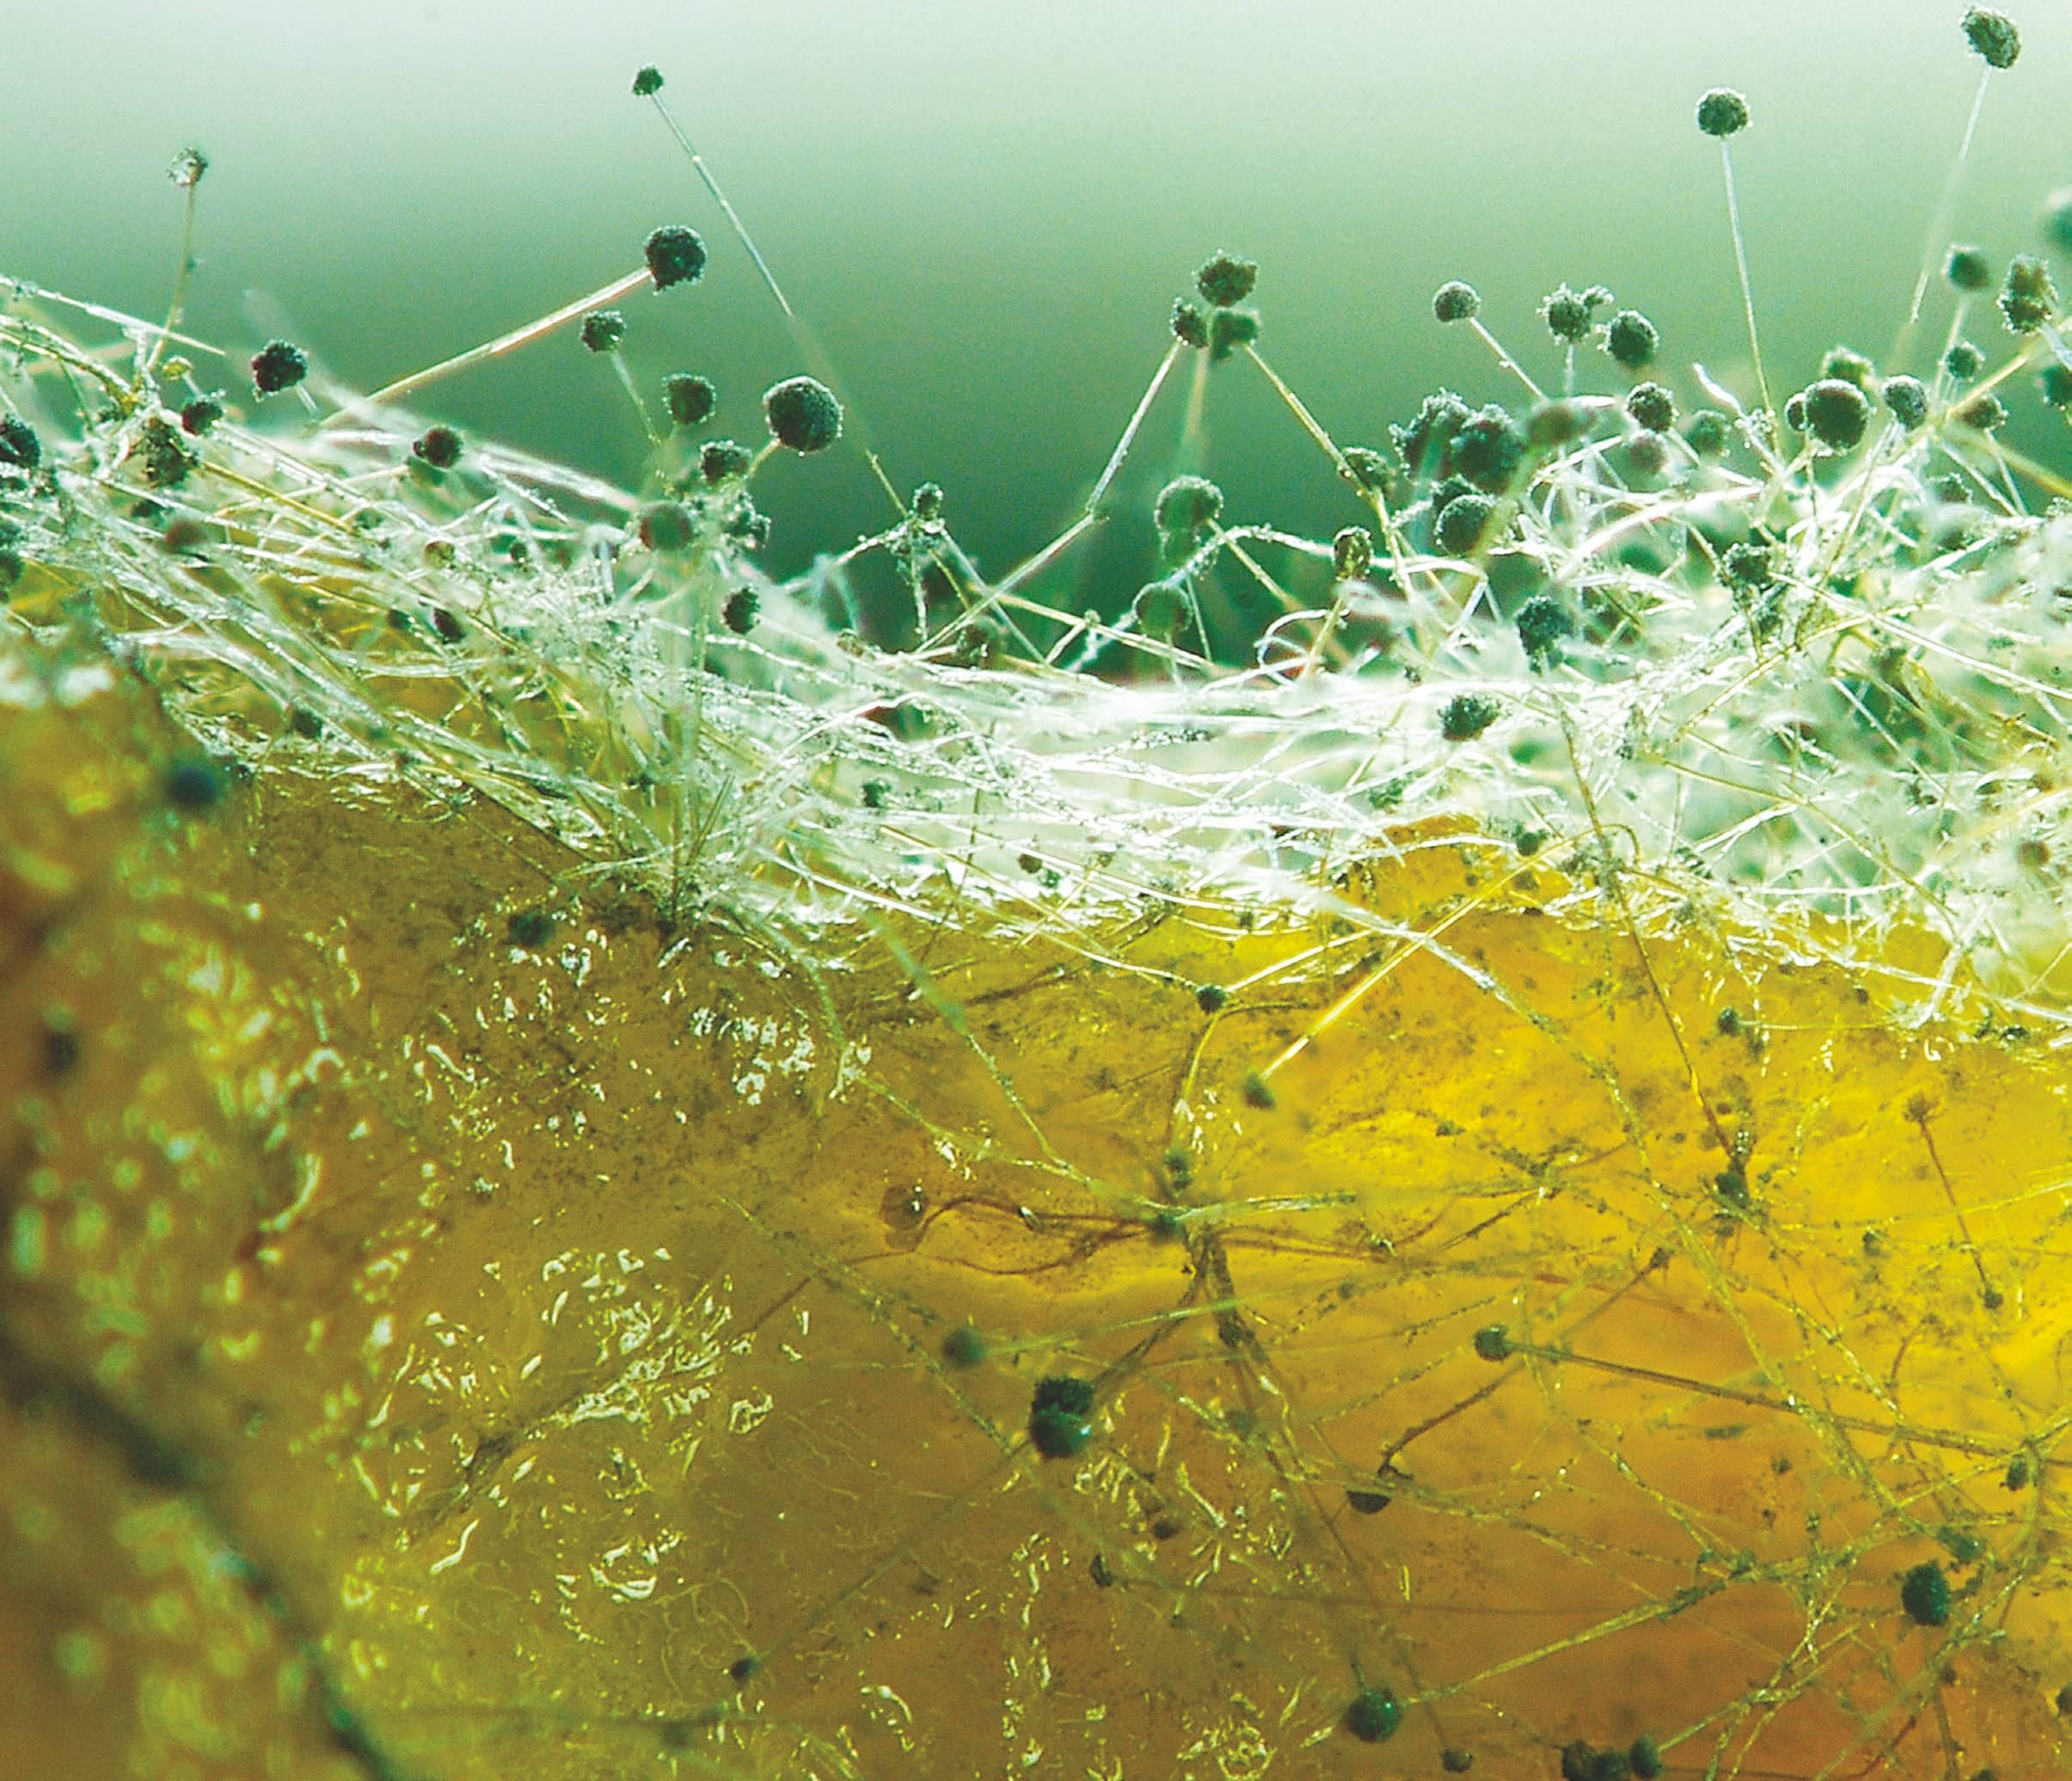 UNDERSTANDING AND OVERCOMING THE EFFECTS OF MOLD TOXICITY AND BIOTOXIN ILLNESS